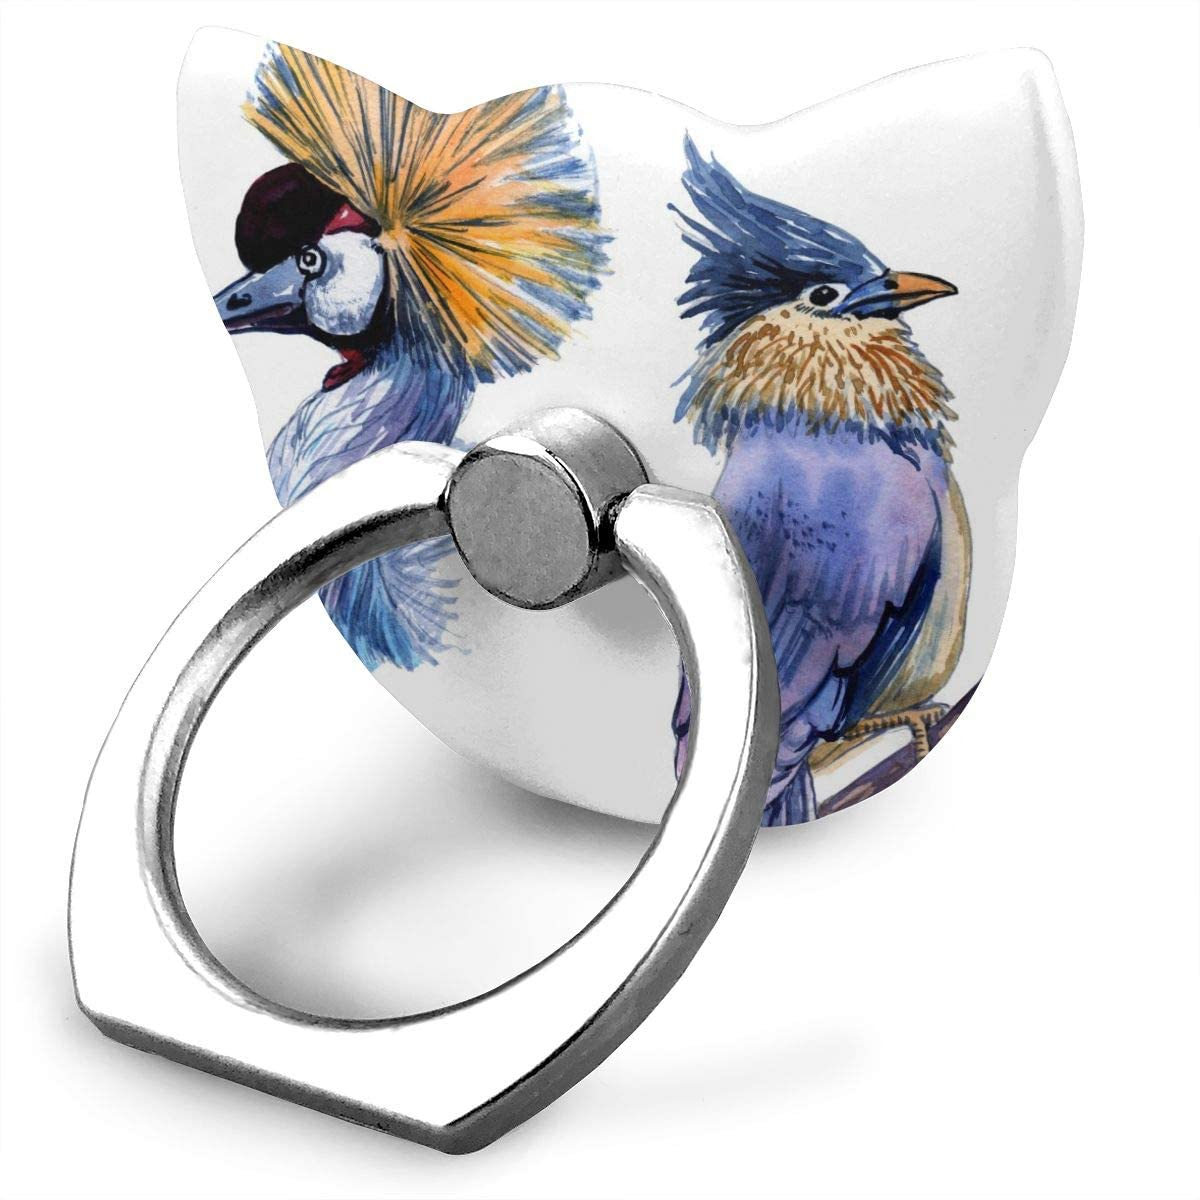 Cat Cell Phone Ring Holder, Ring Phone Holder Fantastic Watercolor Birds Cat Ring Holder for Cell Phone, Phone Ring Stand Finger Kickstand 360° Rotation Compatible with All Smartphones